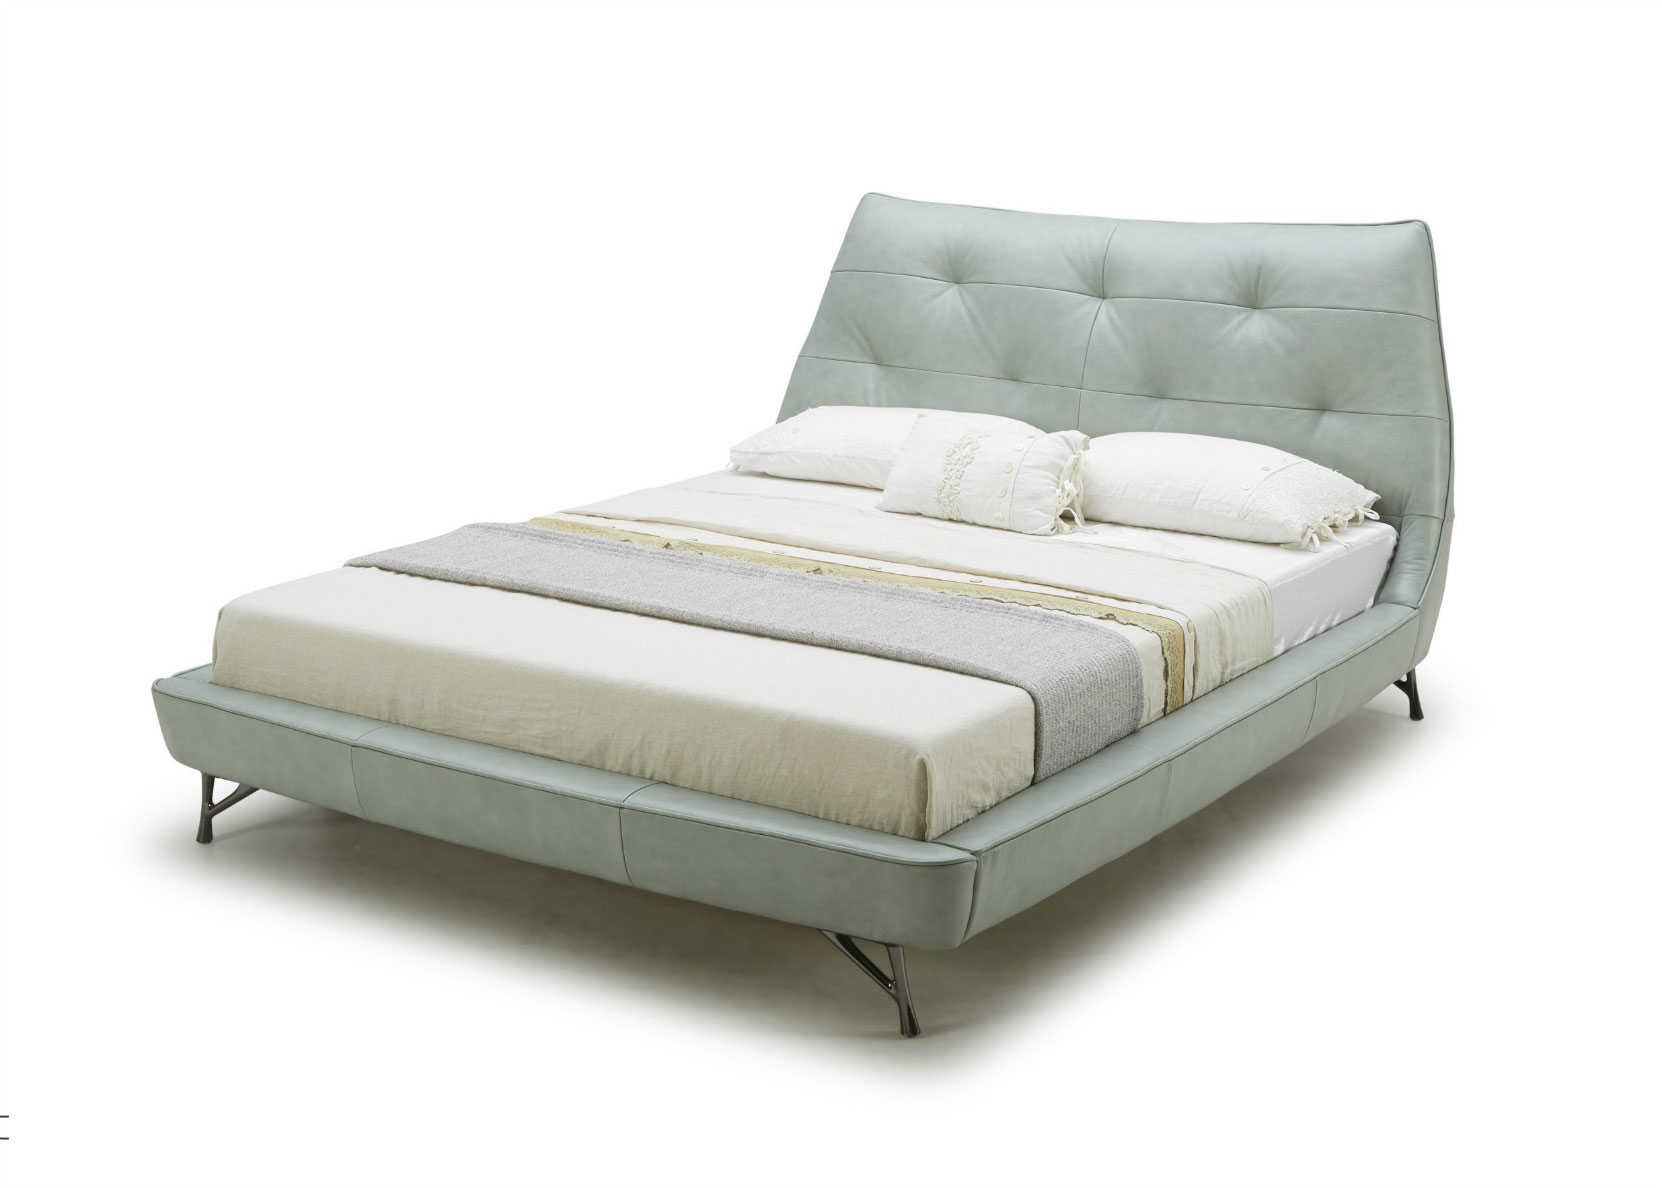 Bed With Light Blue Leather Upholstery Not Just Brown